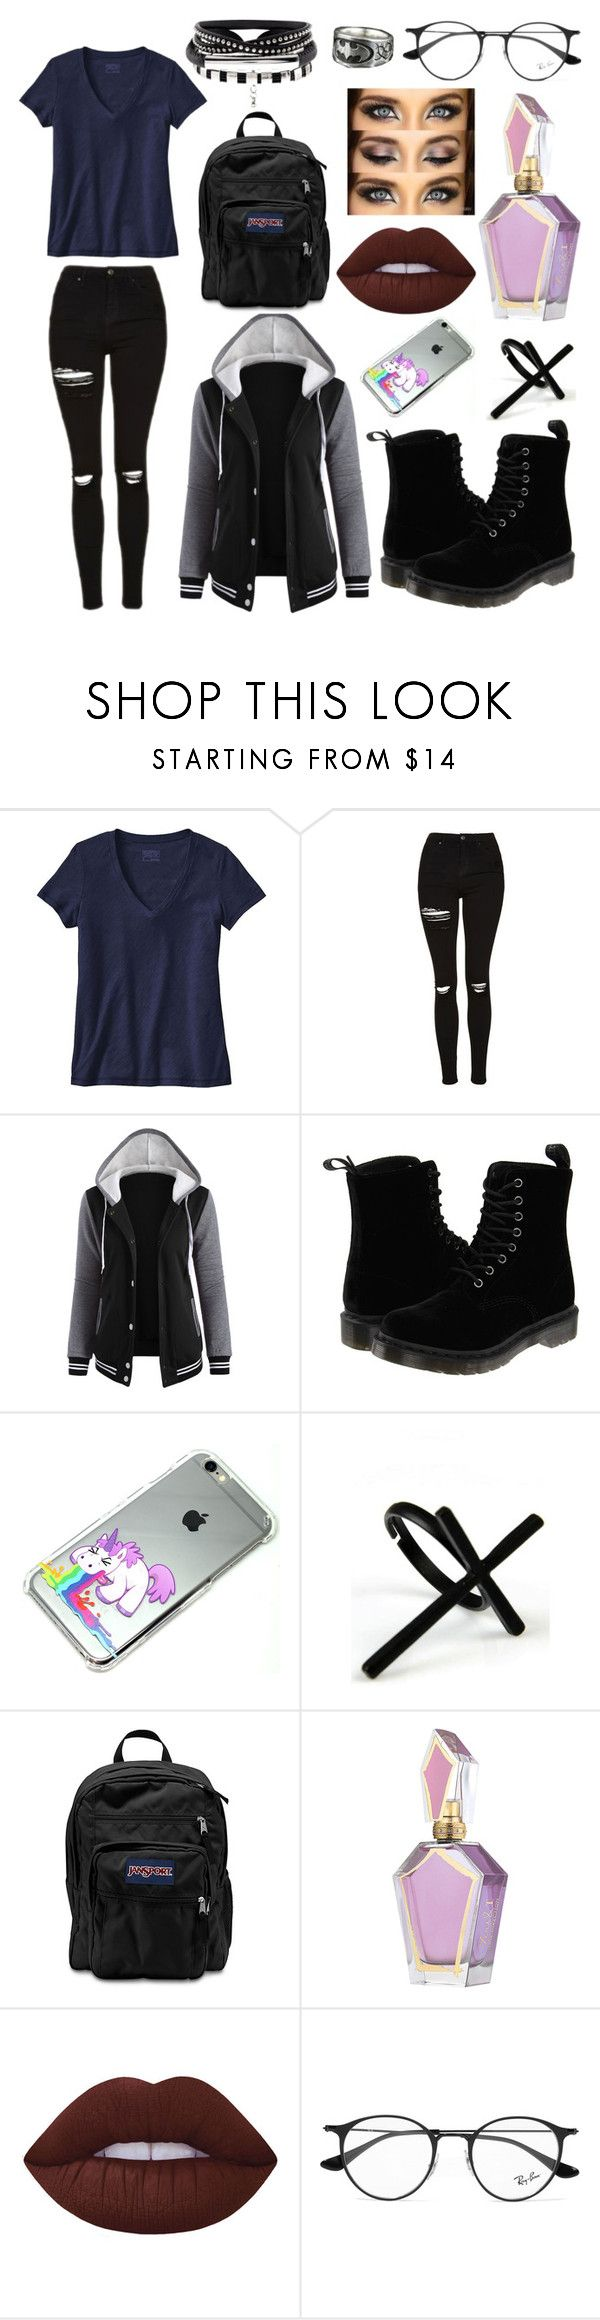 Untitled #36 by lesliemelendez on Polyvore featuring moda, Patagonia, Topshop, Dr. Martens, JanSport, Emi Jewellery, Ray-Ban, Lime Crime and INC International Concepts